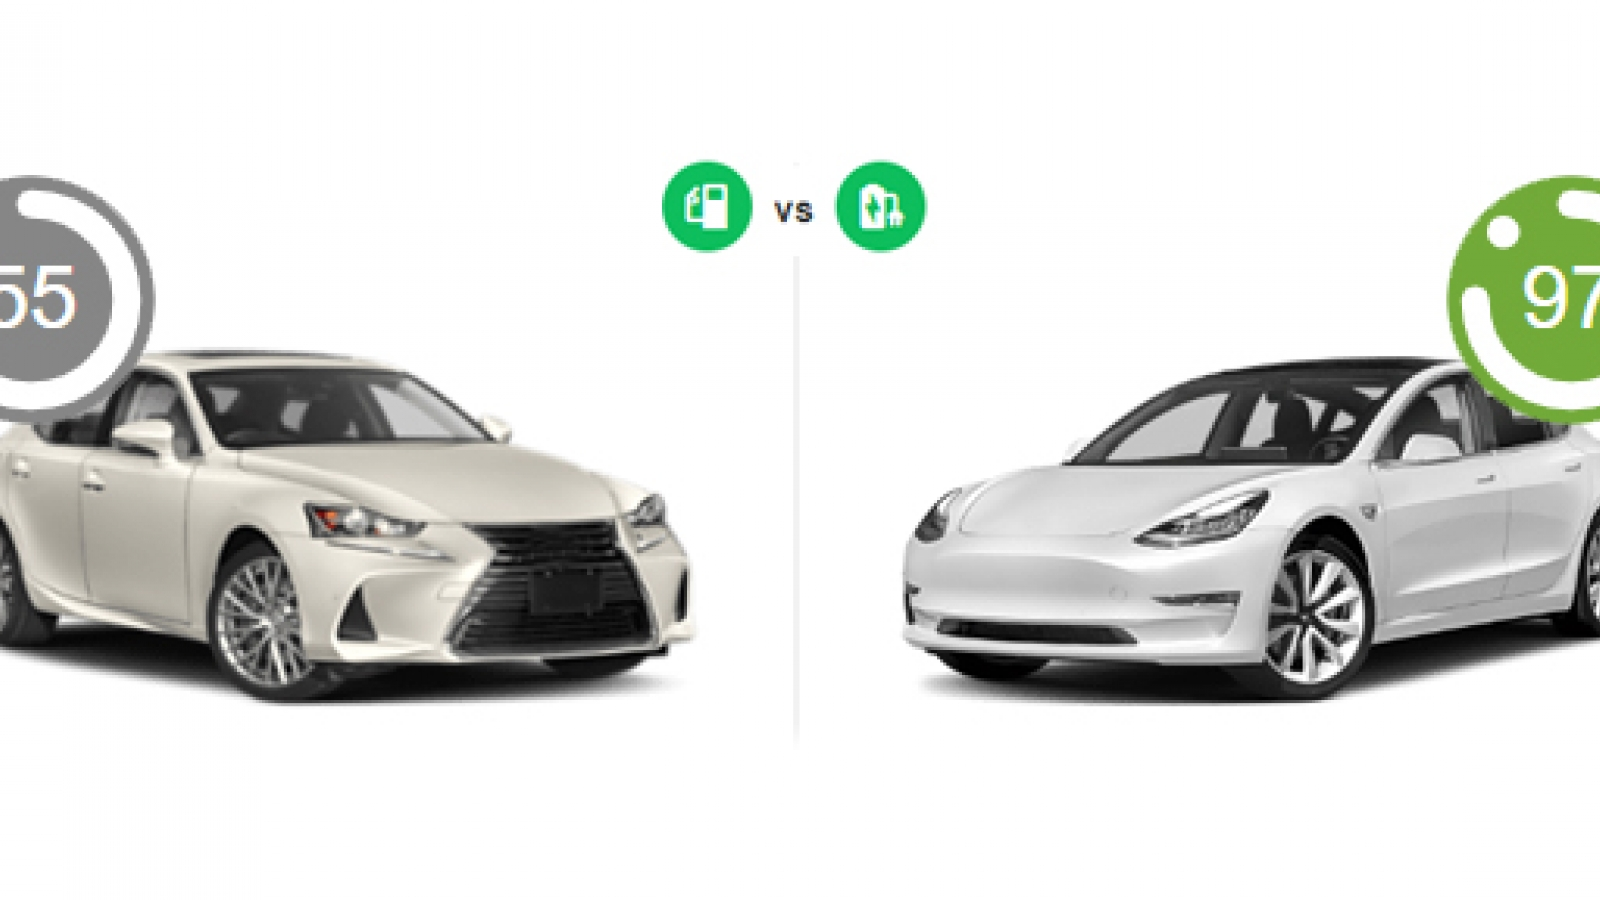 two white electric vehicles in comparison with scores shown above them